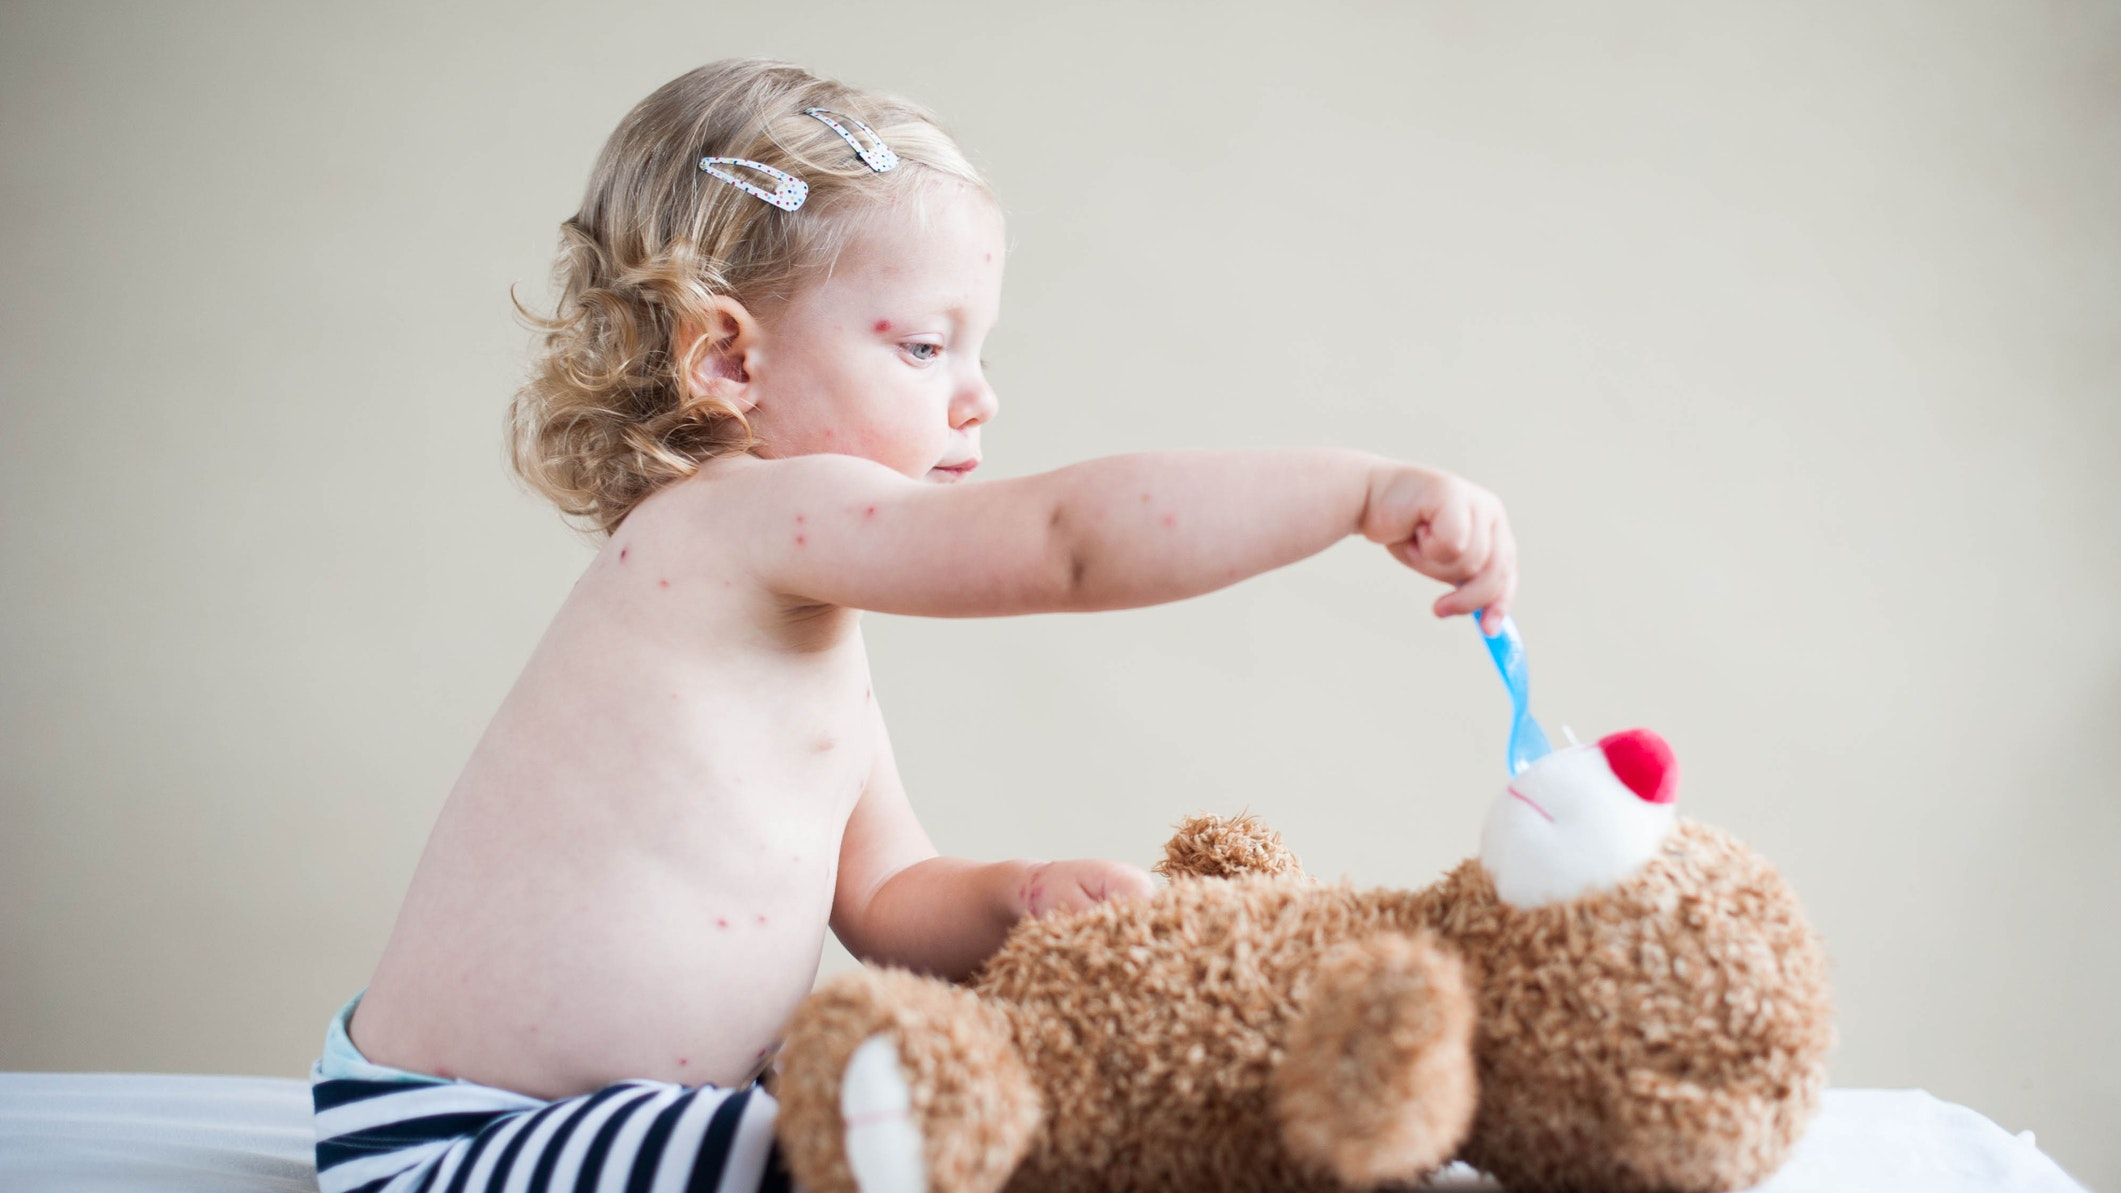 What is my child's rash? How to identify 10 rashes and tell